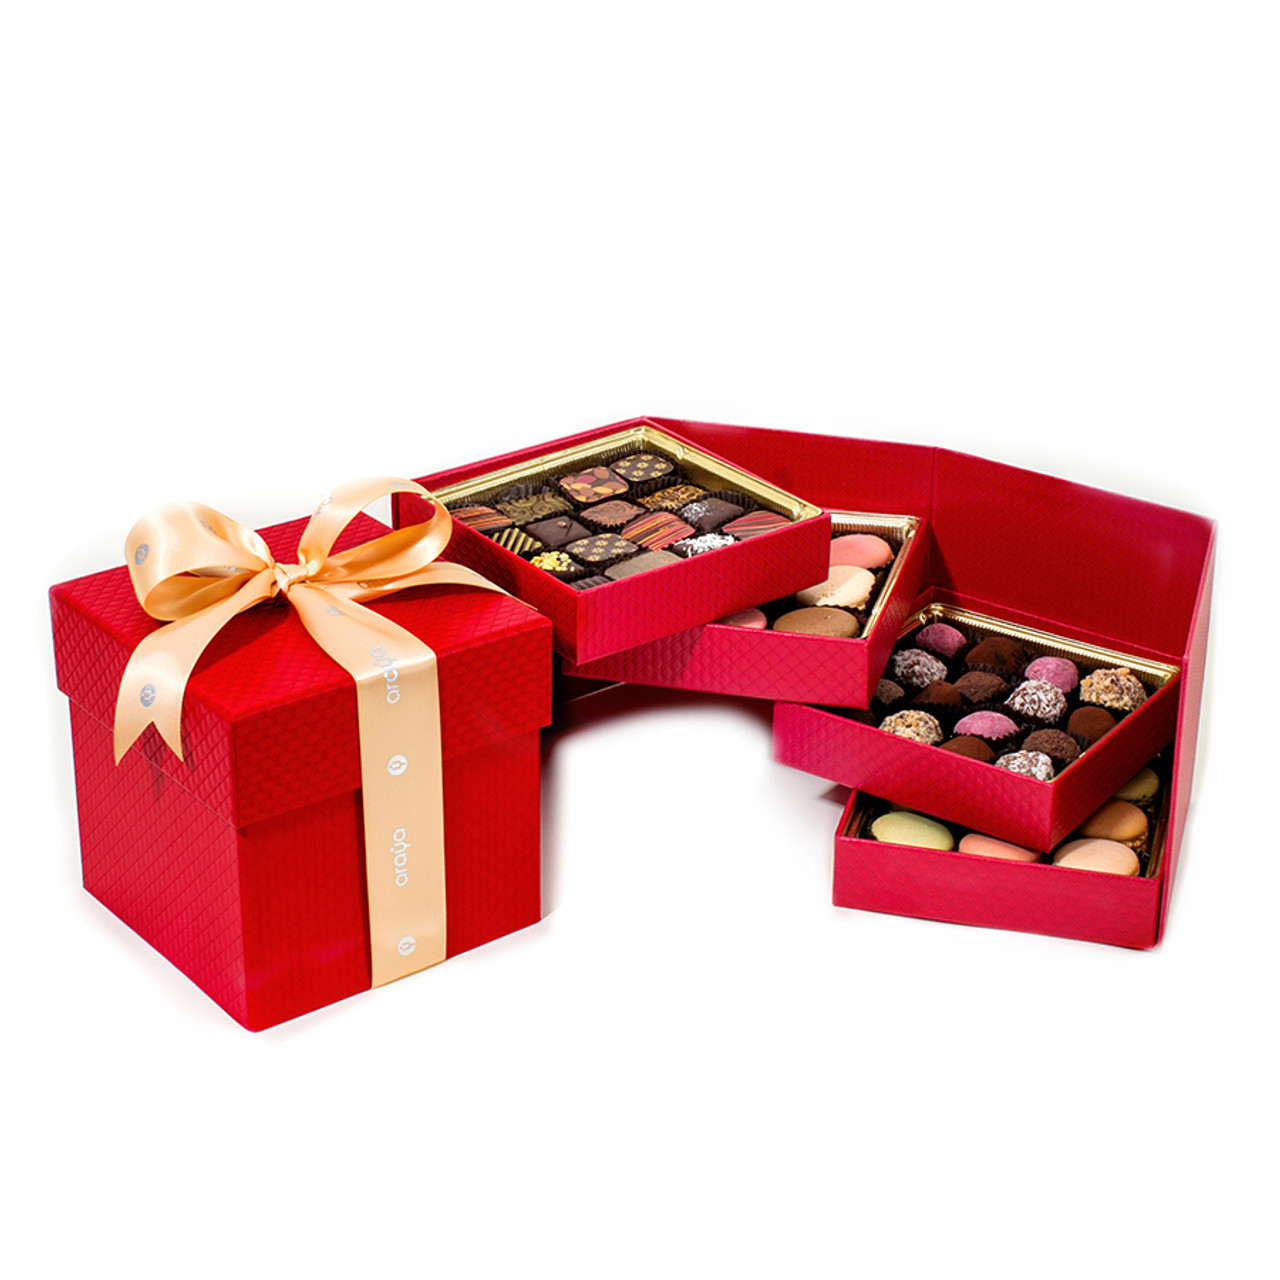 Multilayer Deluxe Gift Box